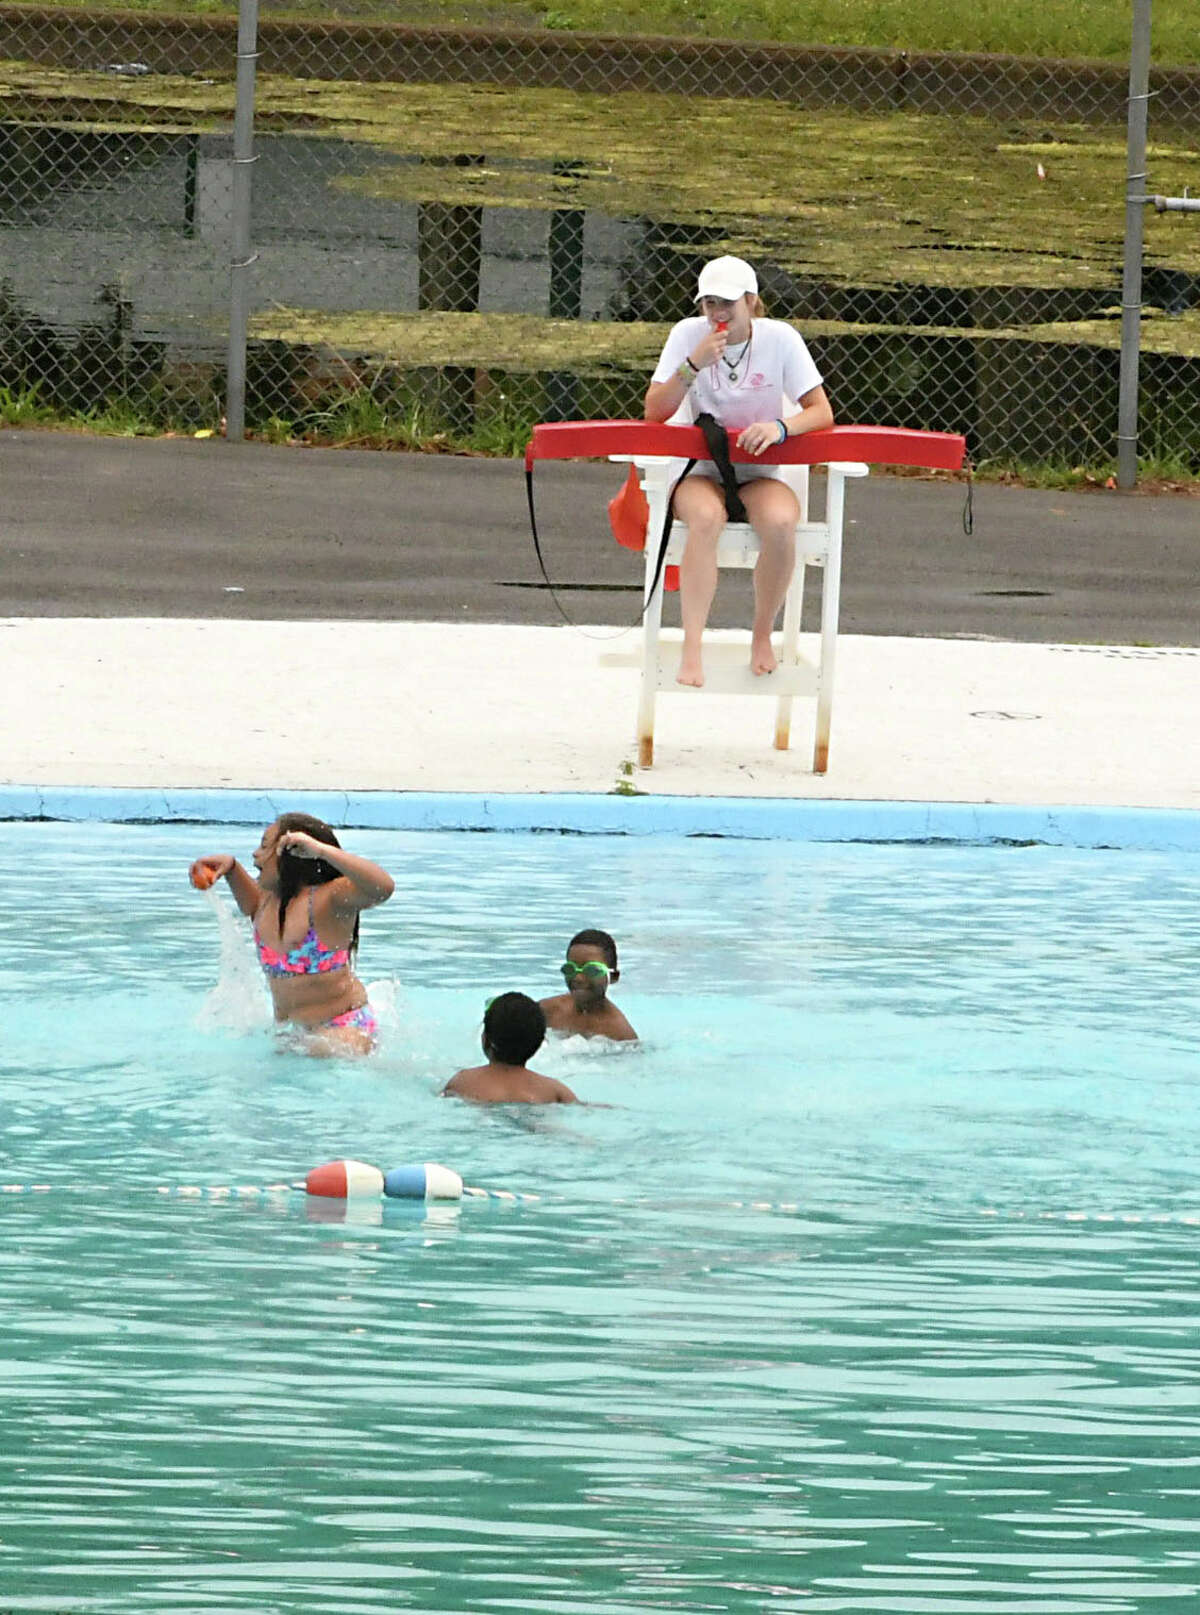 A lifeguard keeps an eye on children swimming in the pool at Central Park on Thursday, June 28, 2018 in Schenectady, N.Y. Today starts a stretch of hot and humid weather. (Lori Van Buren/Times Union)